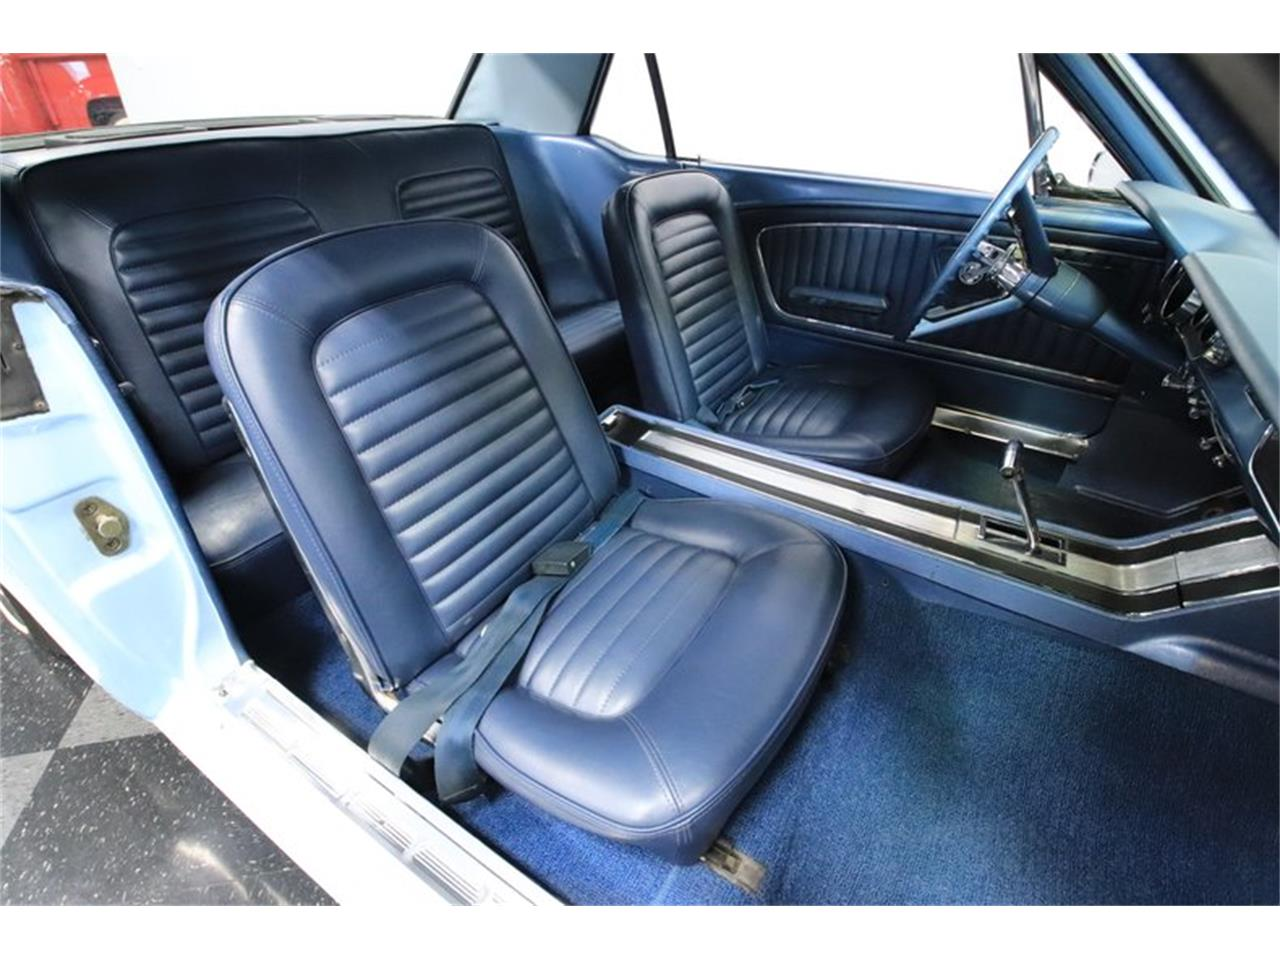 Large Picture of Classic 1965 Ford Mustang GT located in Arizona - $24,995.00 - MI7M